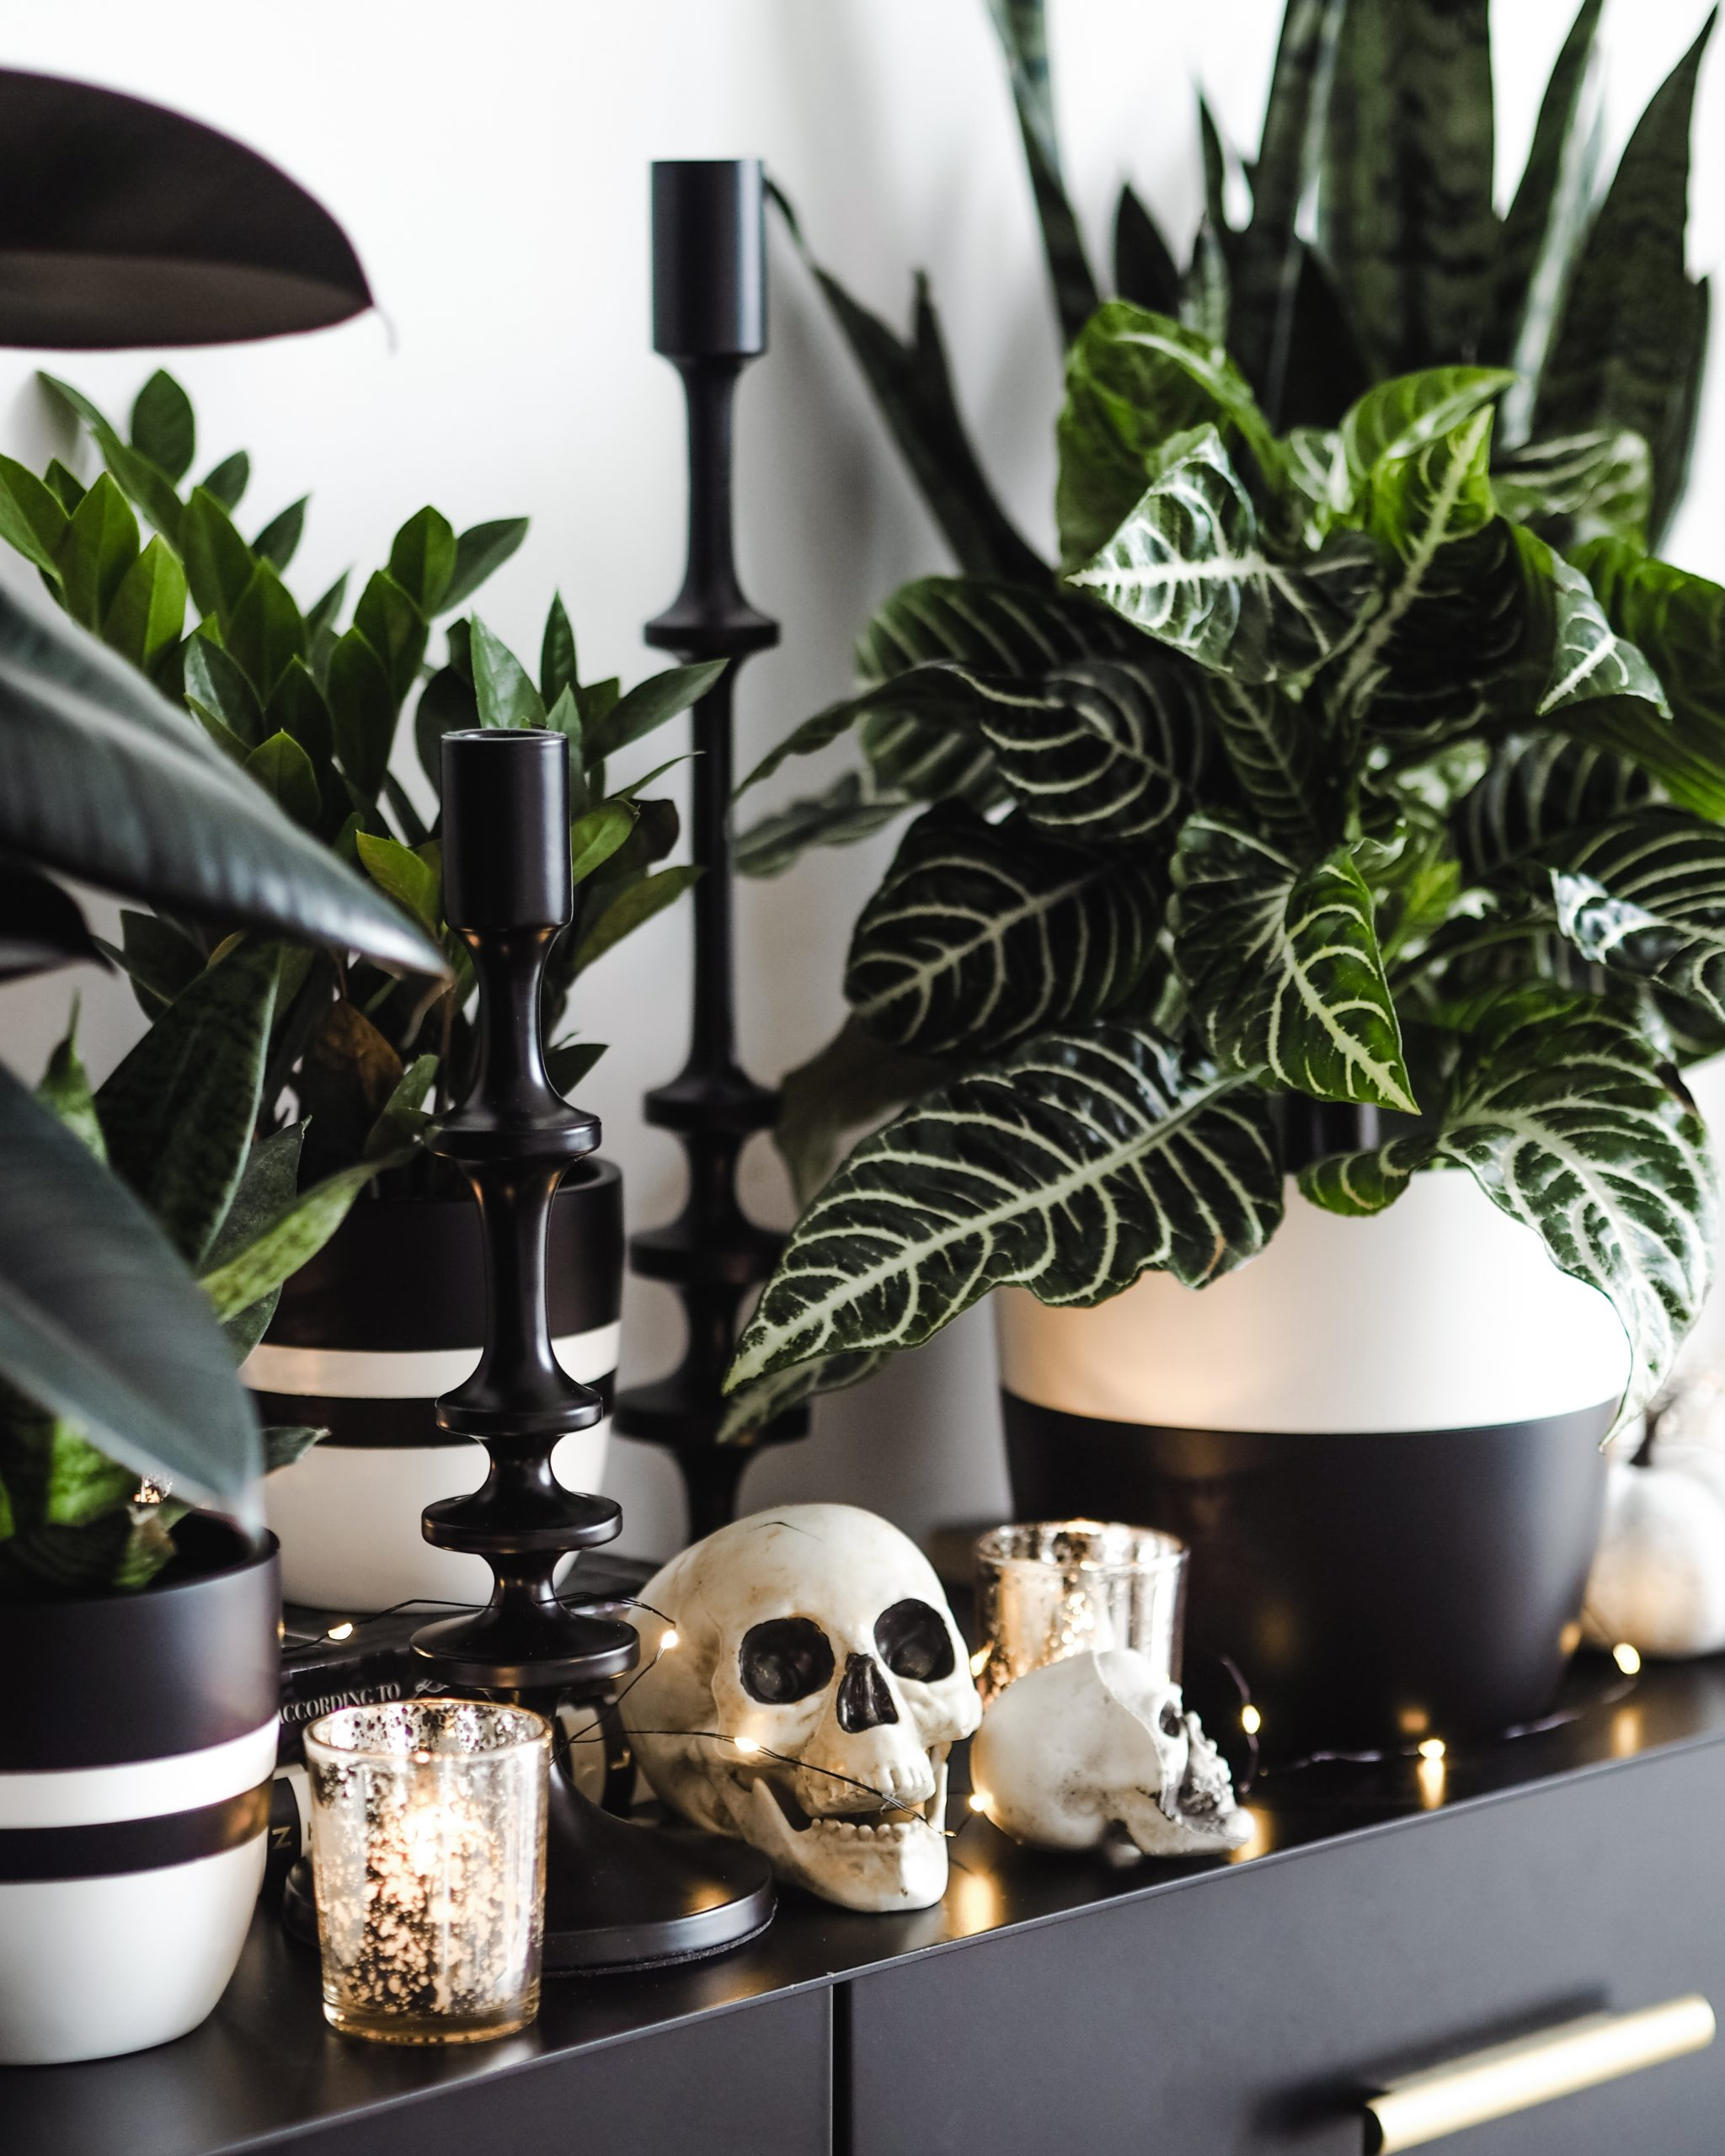 Dark green potted plants alongside halloween decorations like skulls and dark candle holders.